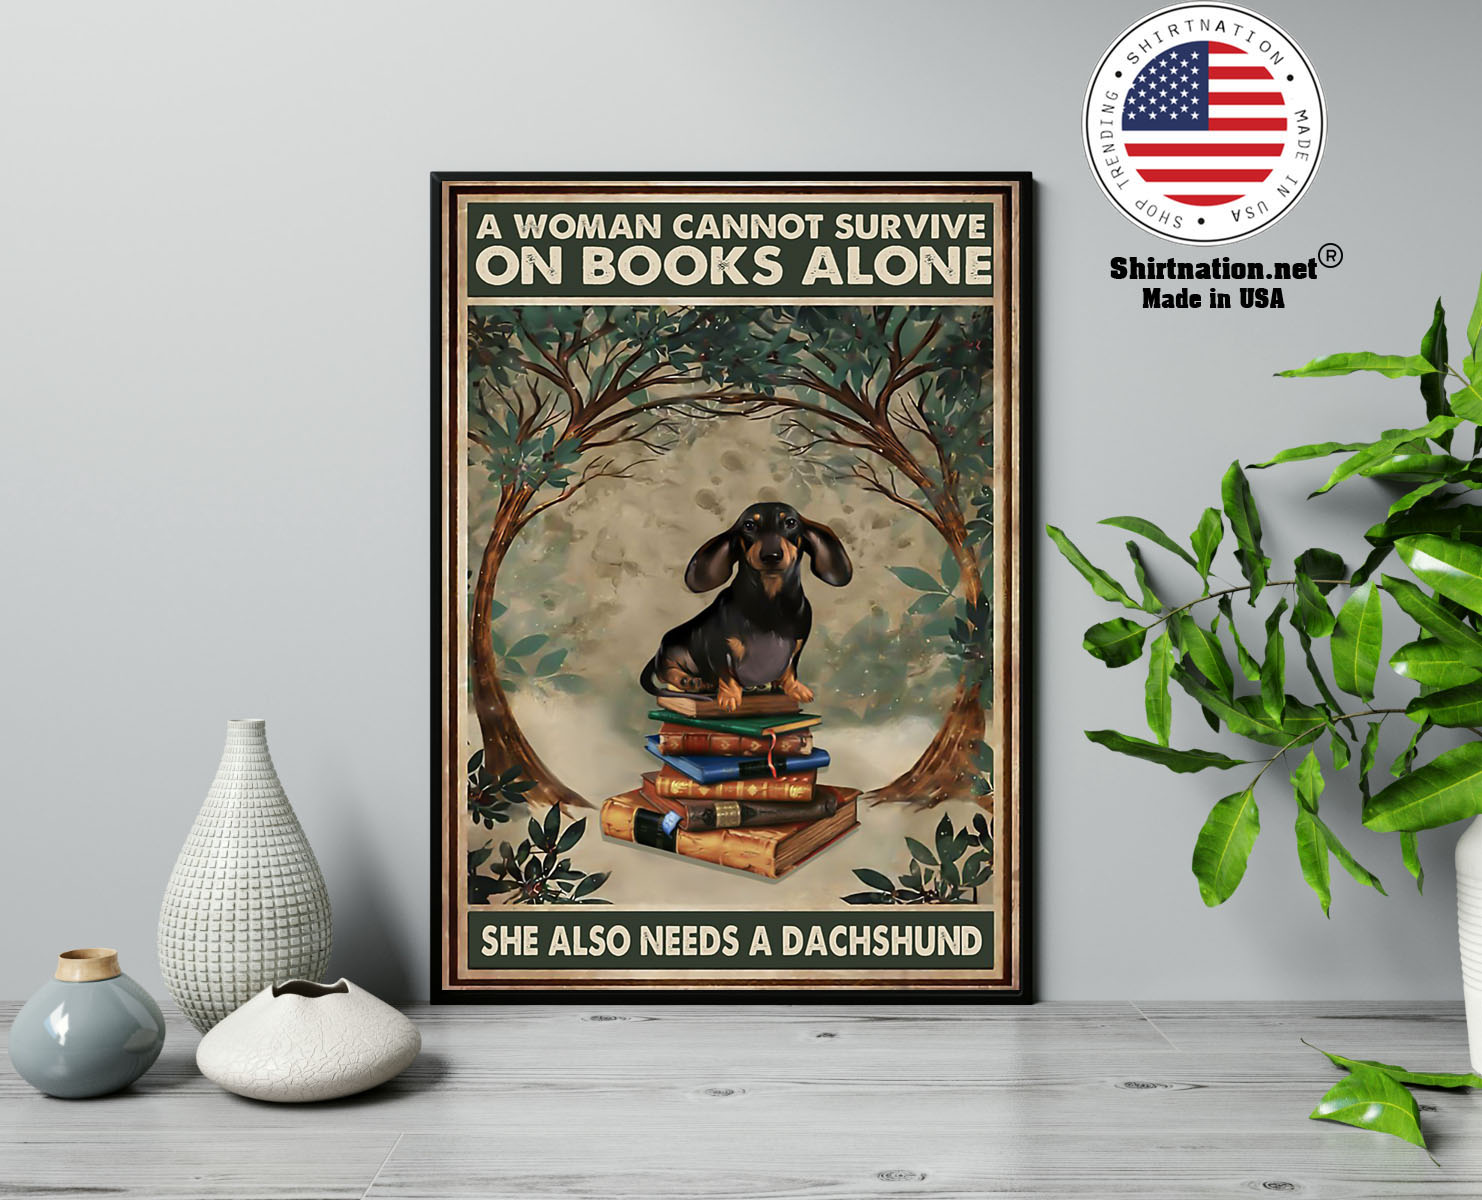 A woman cannot survive on the book alone she need dachshund poster 13